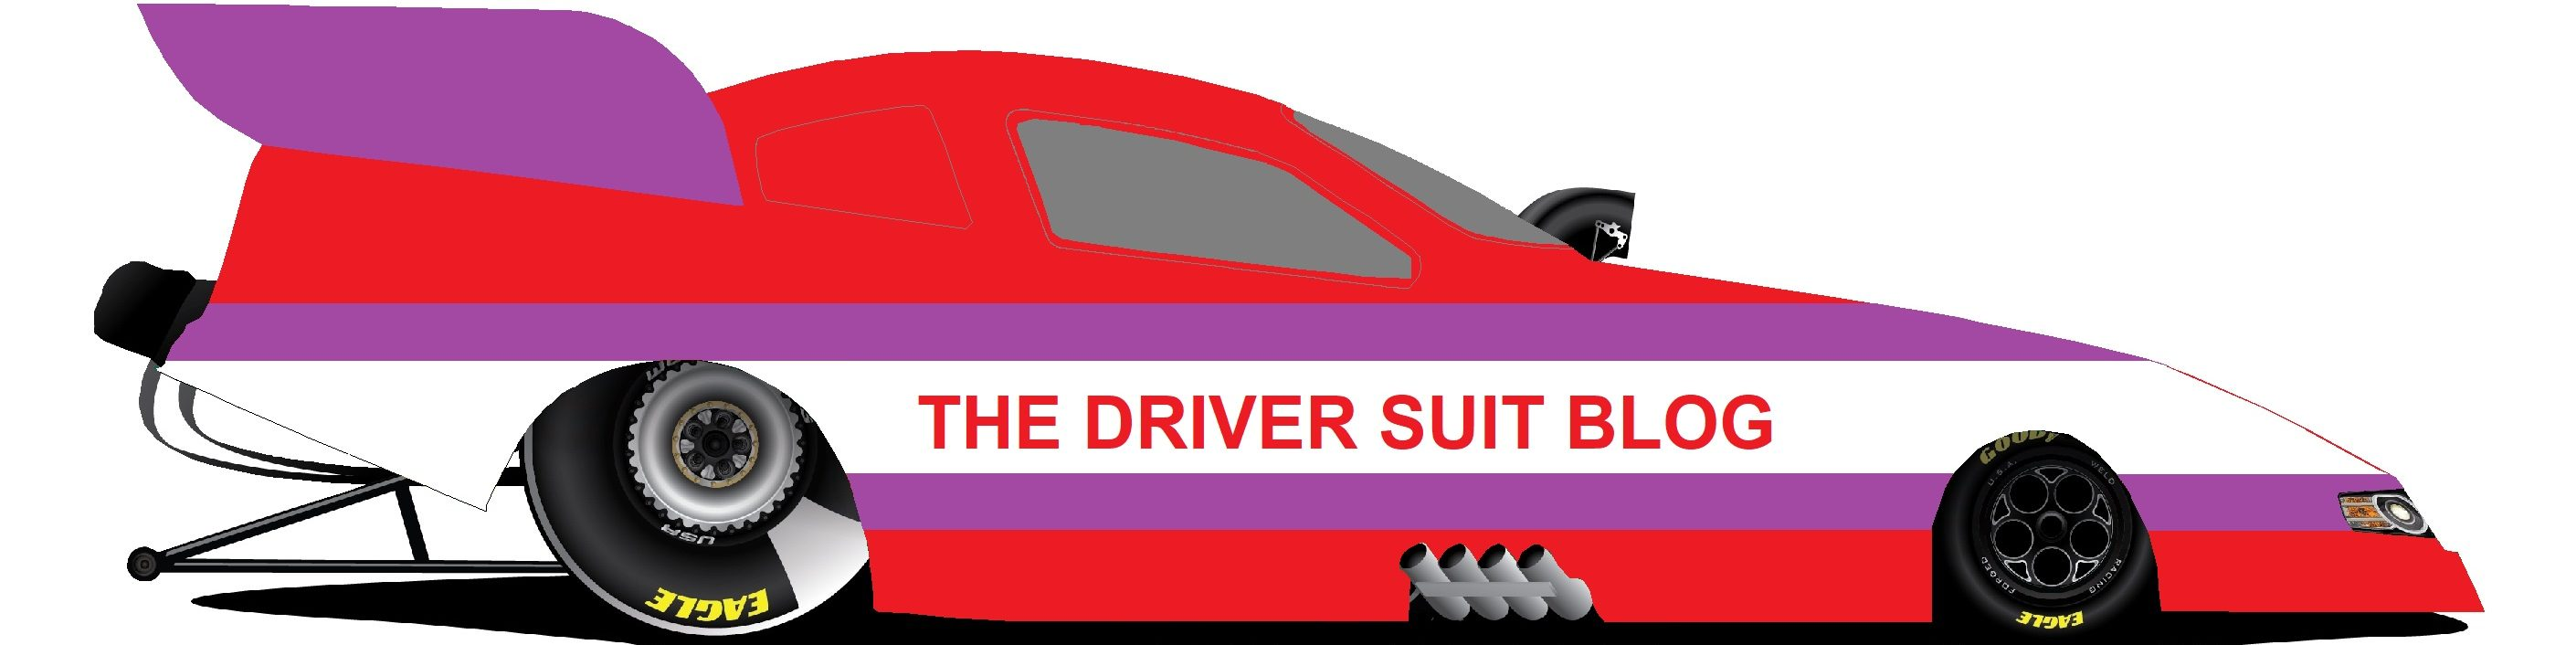 The Driver Suit Blog